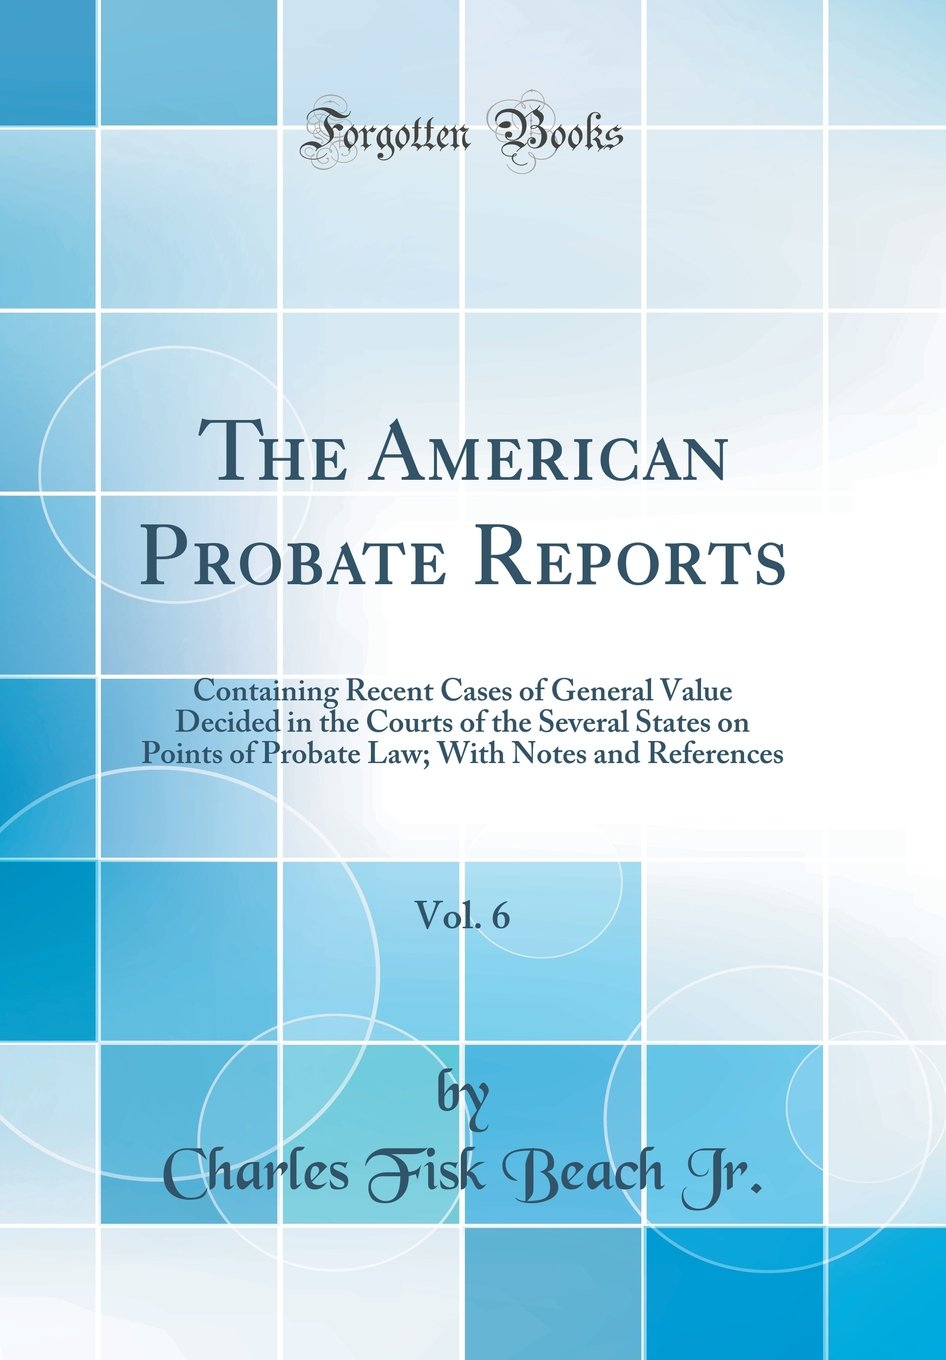 The American Probate Reports, Vol. 6: Containing Recent Cases of General Value Decided in the Courts of the Several States on Points of Probate Law; With Notes and References (Classic Reprint) ebook